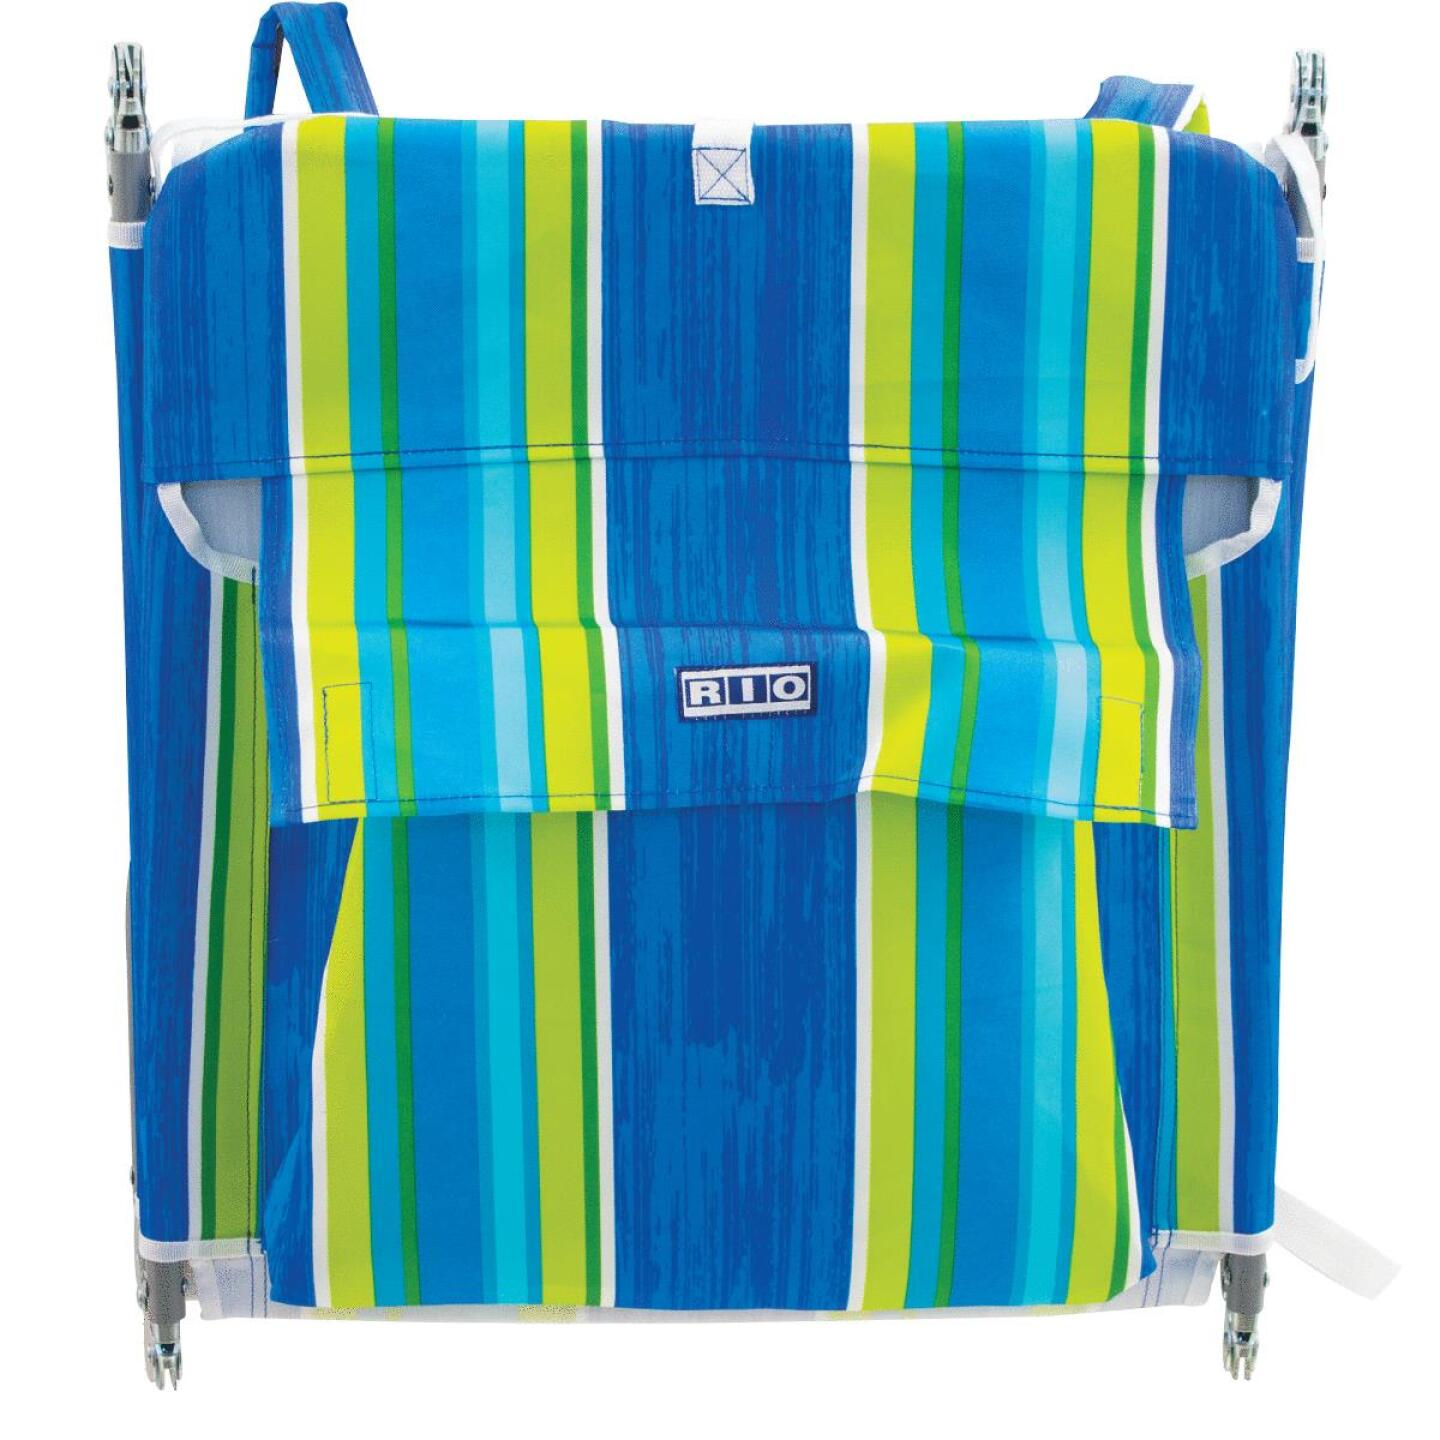 Rio Brands Beach Multiple-Position Blue & Green Striped Steel Folding Backpack Lounger Image 2